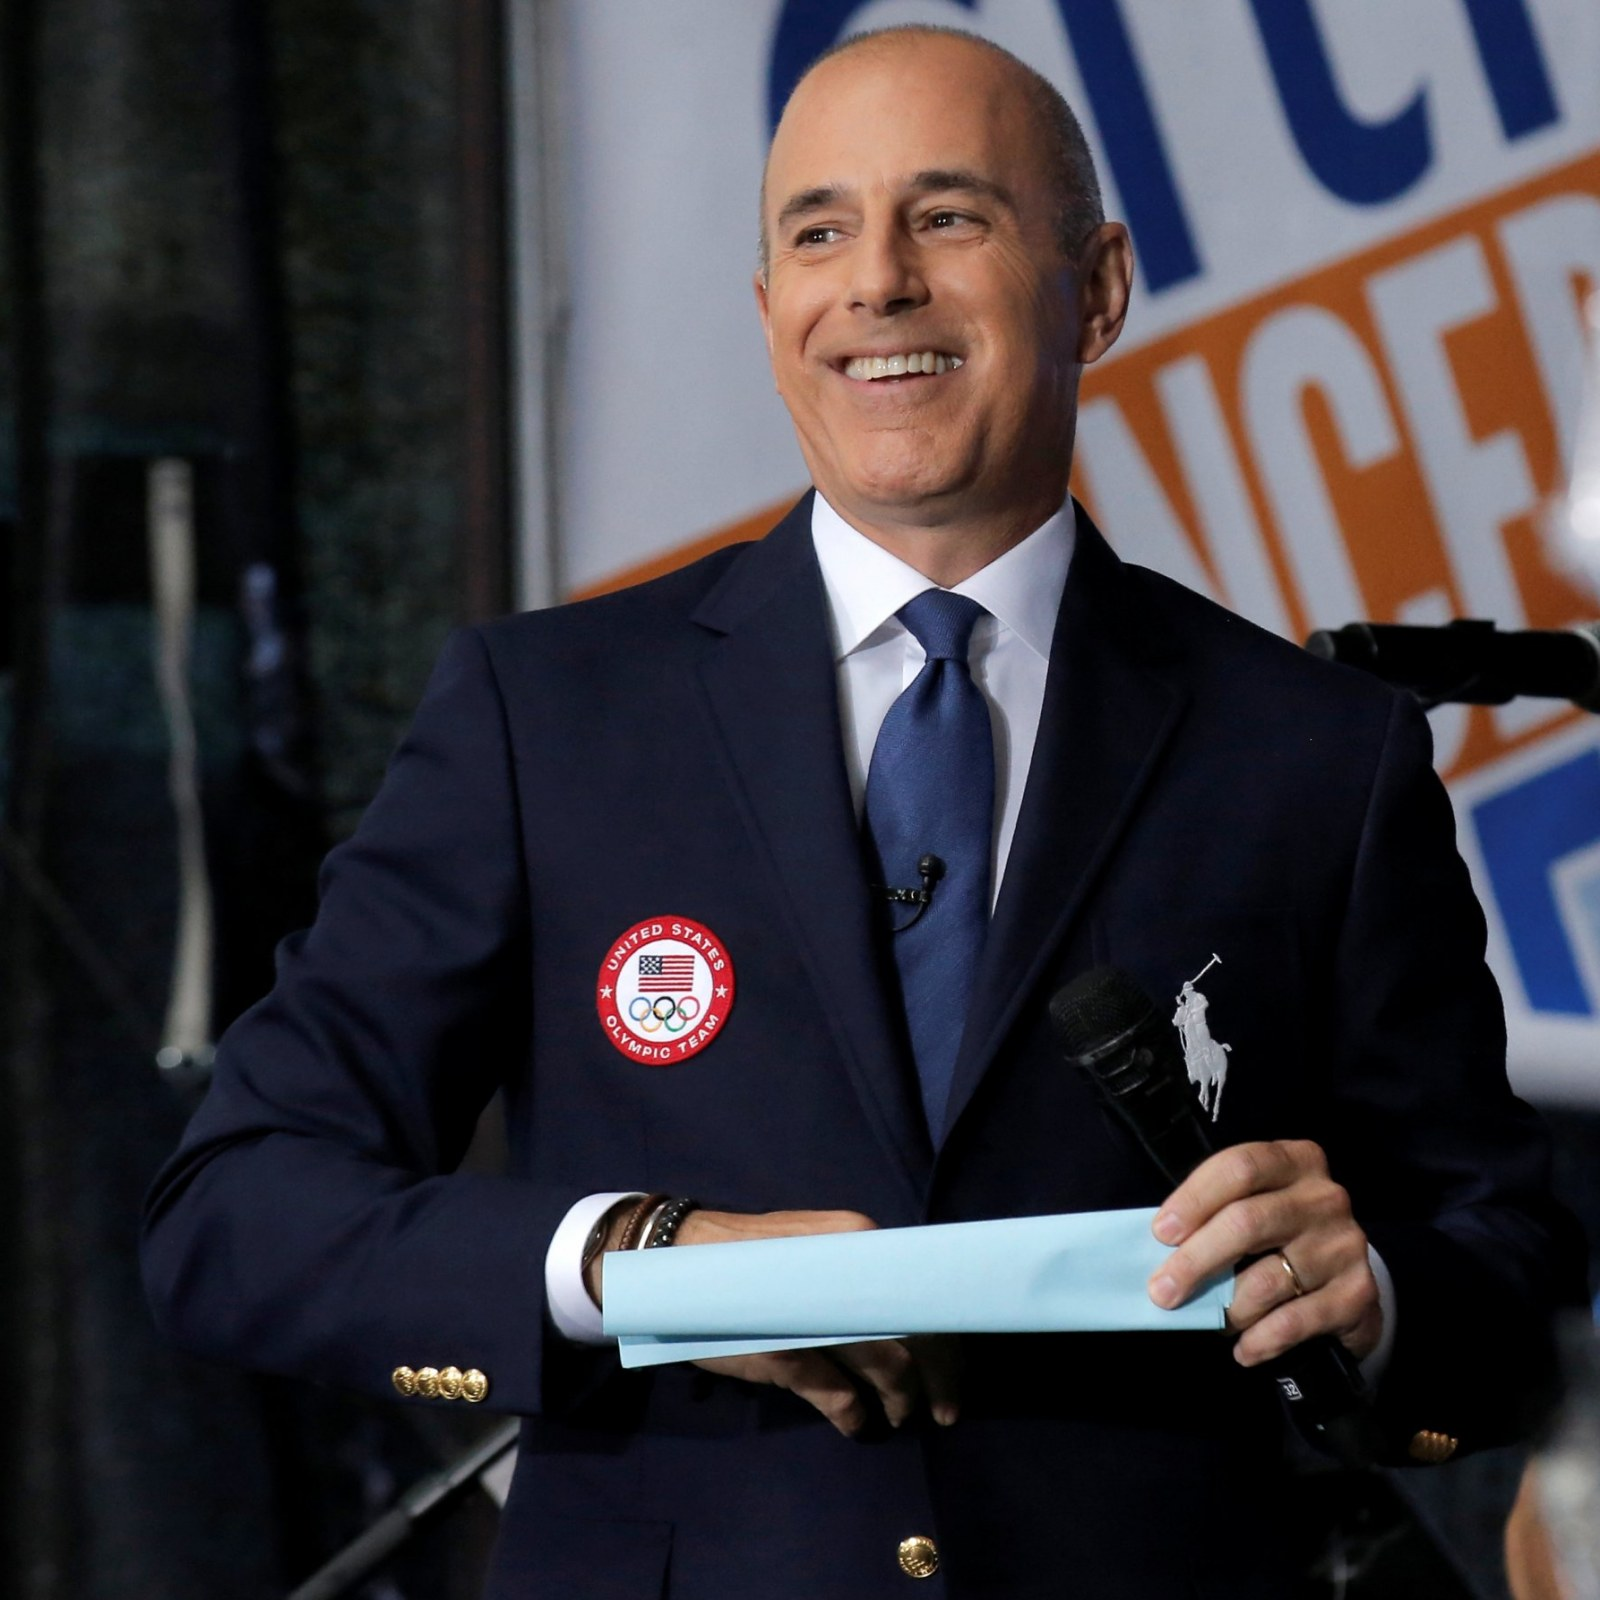 Matt Lauer Net Worth Disgraced Nbc Host Loses Huge Salary After Firing